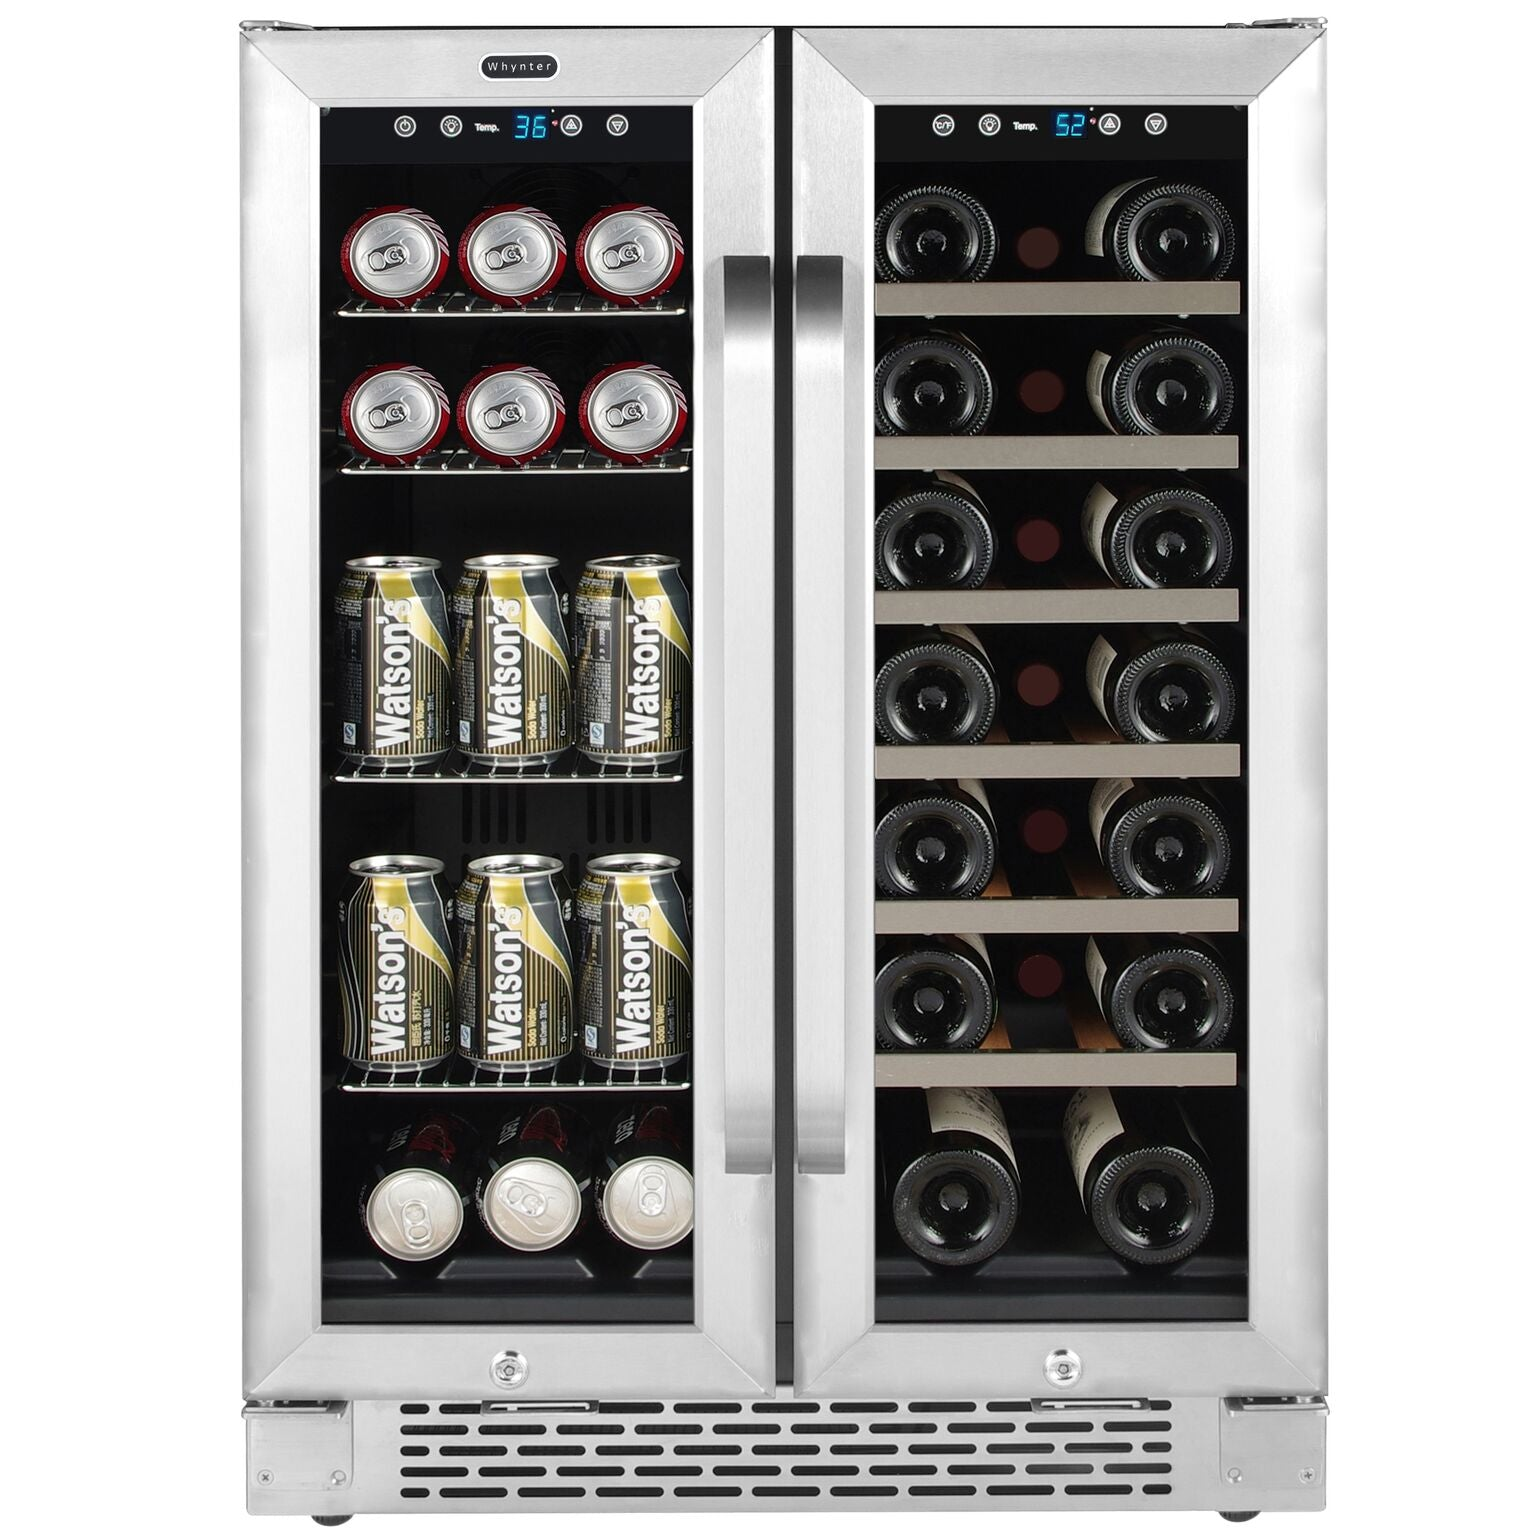 Whynter 20-Bottle/60-Can Undercounter Wine and Beverage Cooler - BWB-2060FDS,BWB-2060FDS